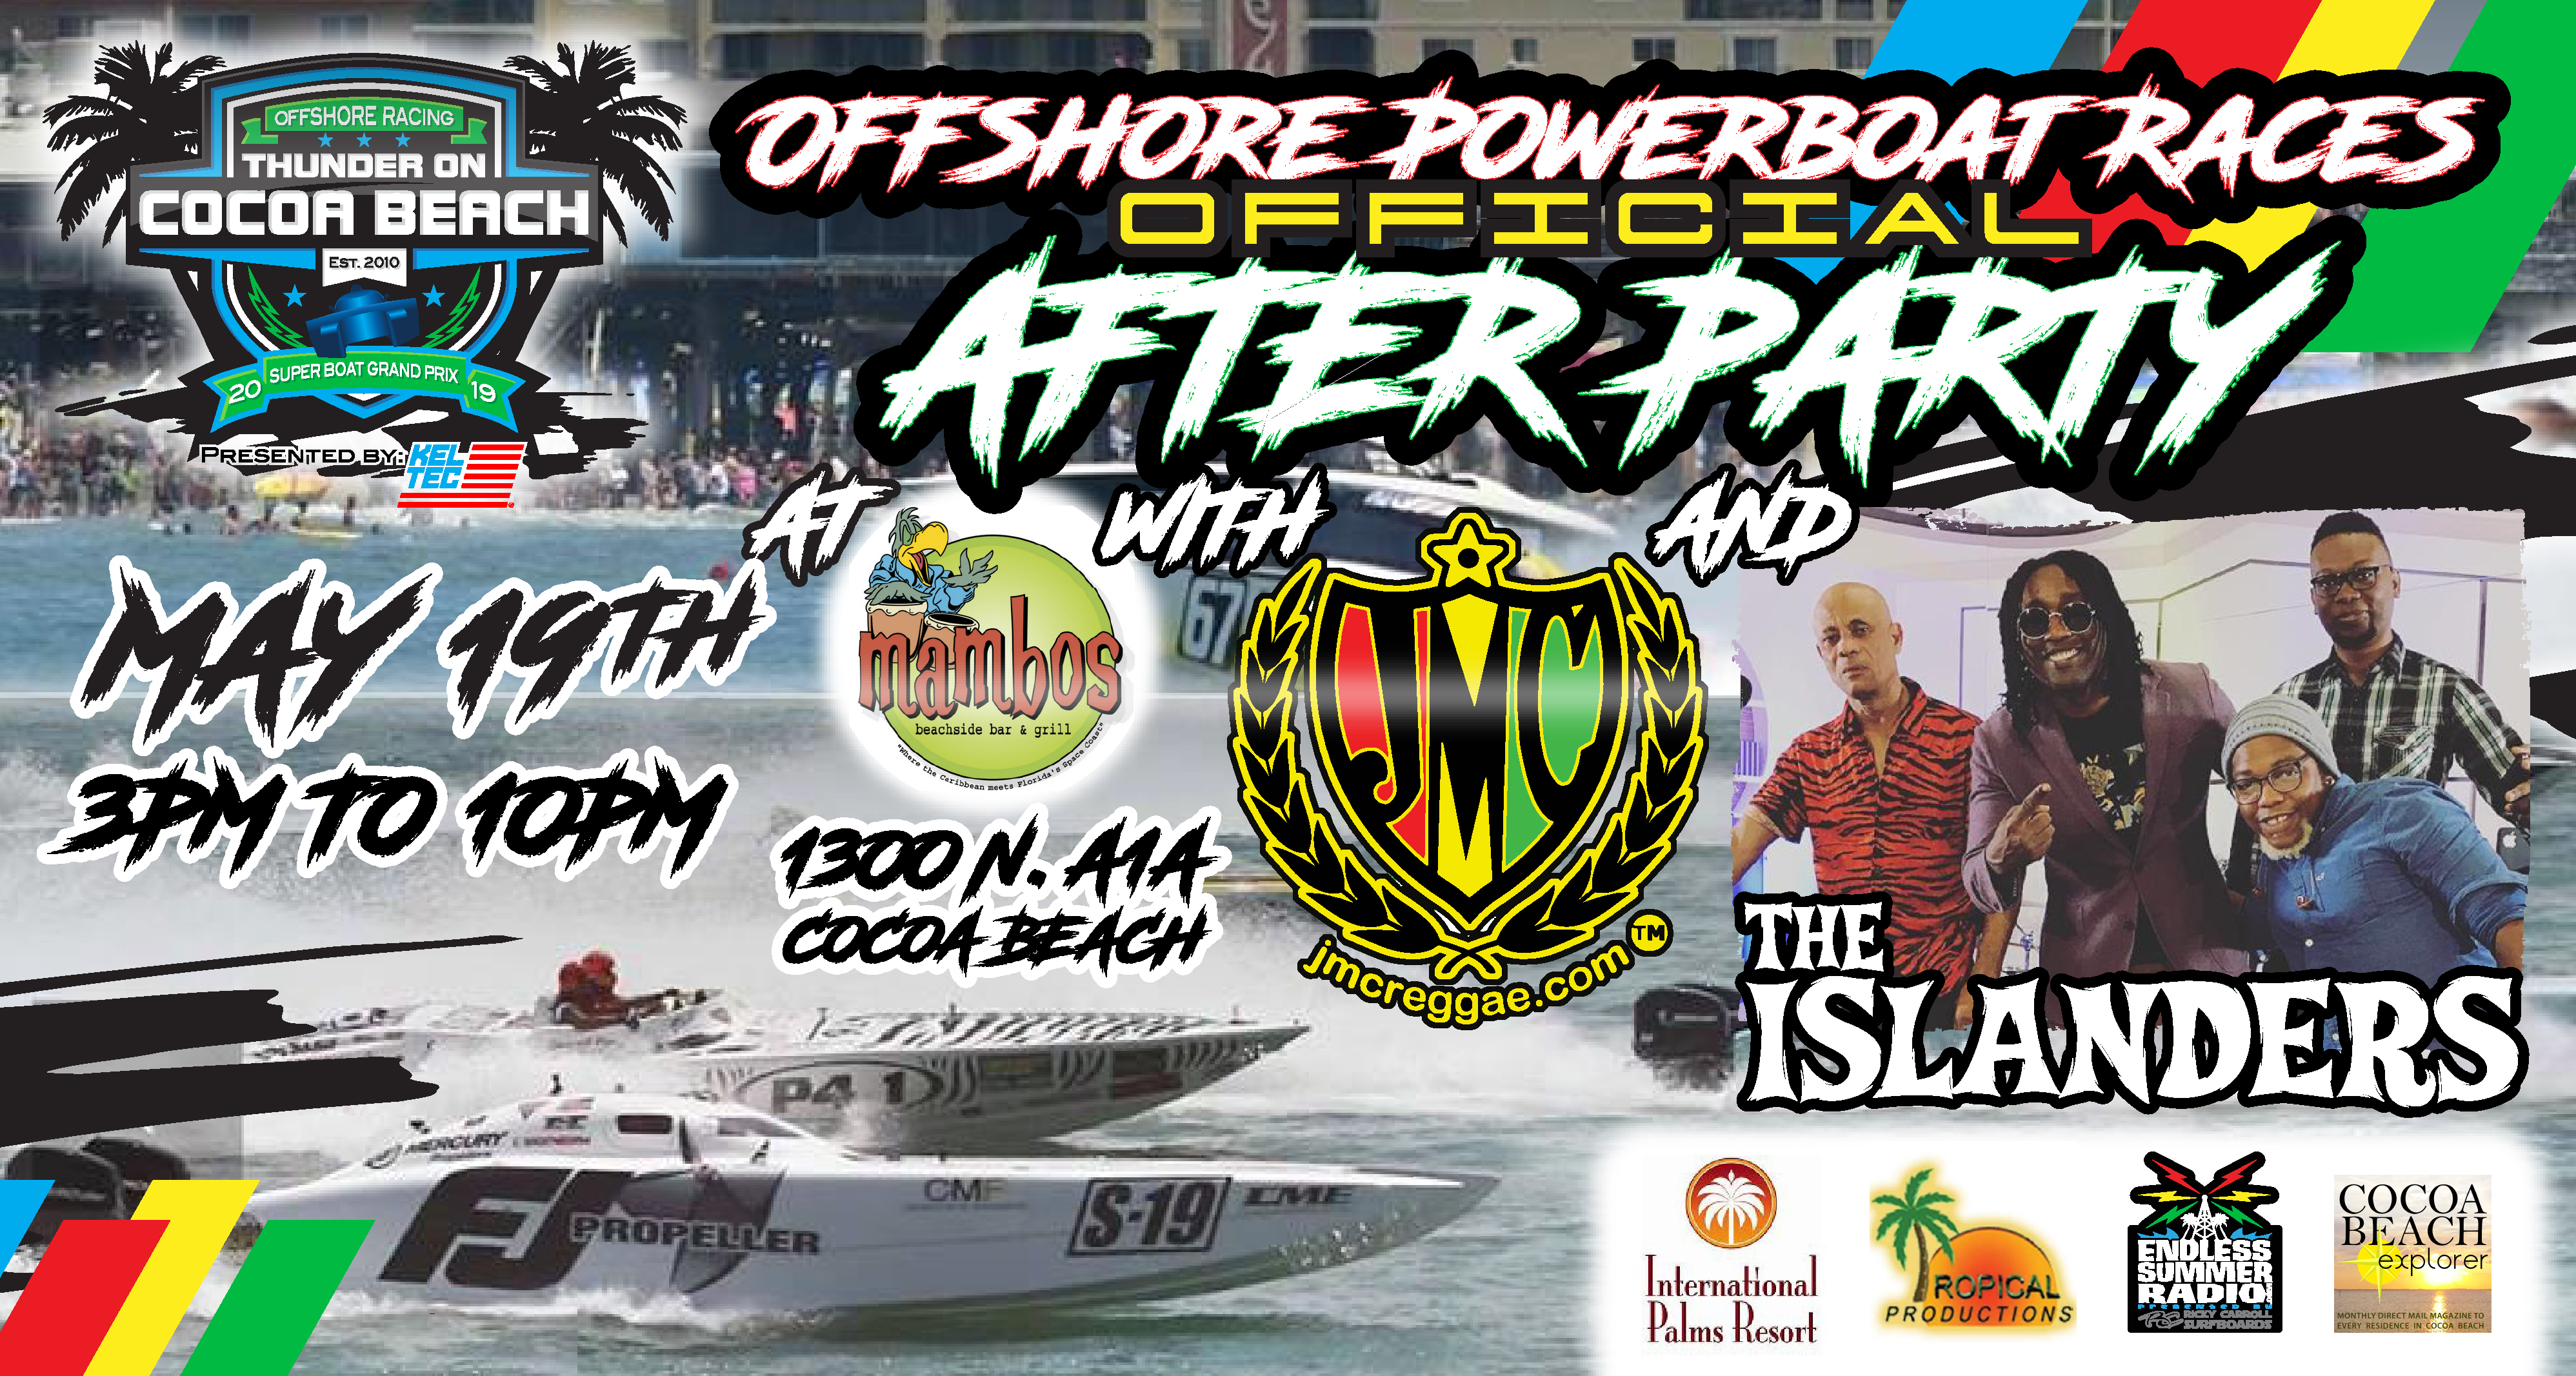 Offshore Powerboat Races Official After Party w/ Islanders